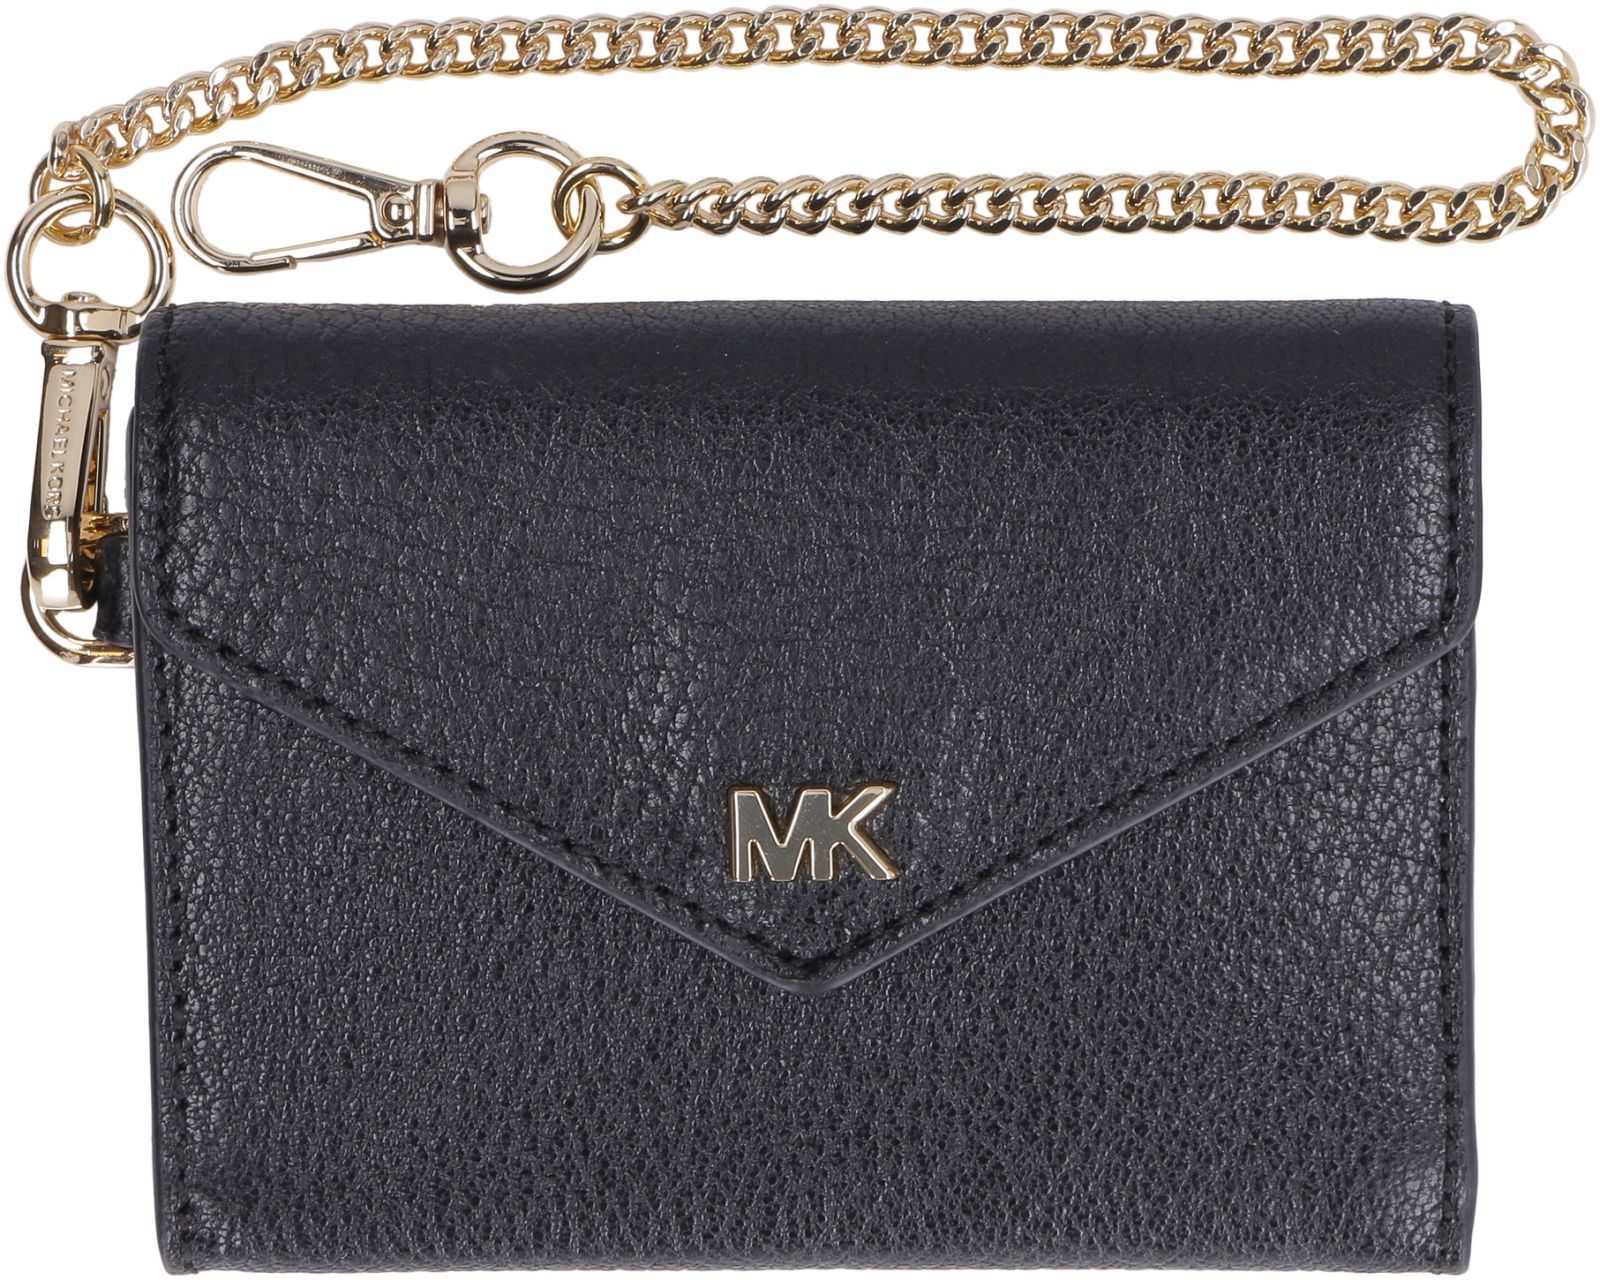 e9d6e6ad6bca91 ... Michael Kors Money Pieces Small Flap-over Leather Wallet - black ...